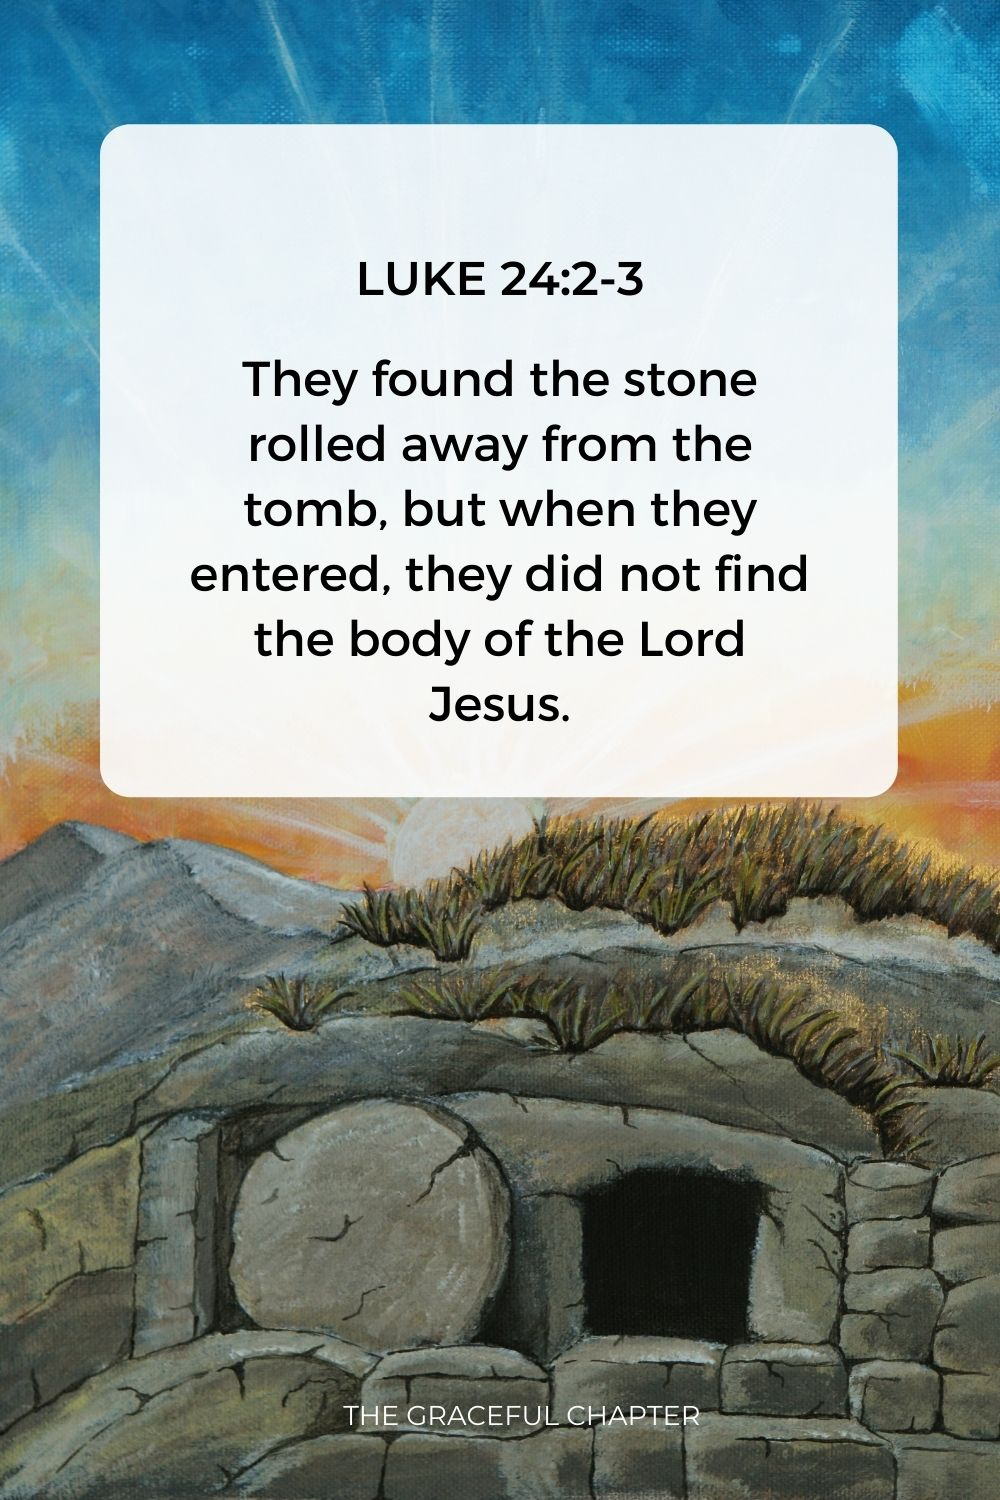 They found the stone rolled away from the tomb, but when they entered, they did not find the body of the Lord Jesus. Luke 24:2-3